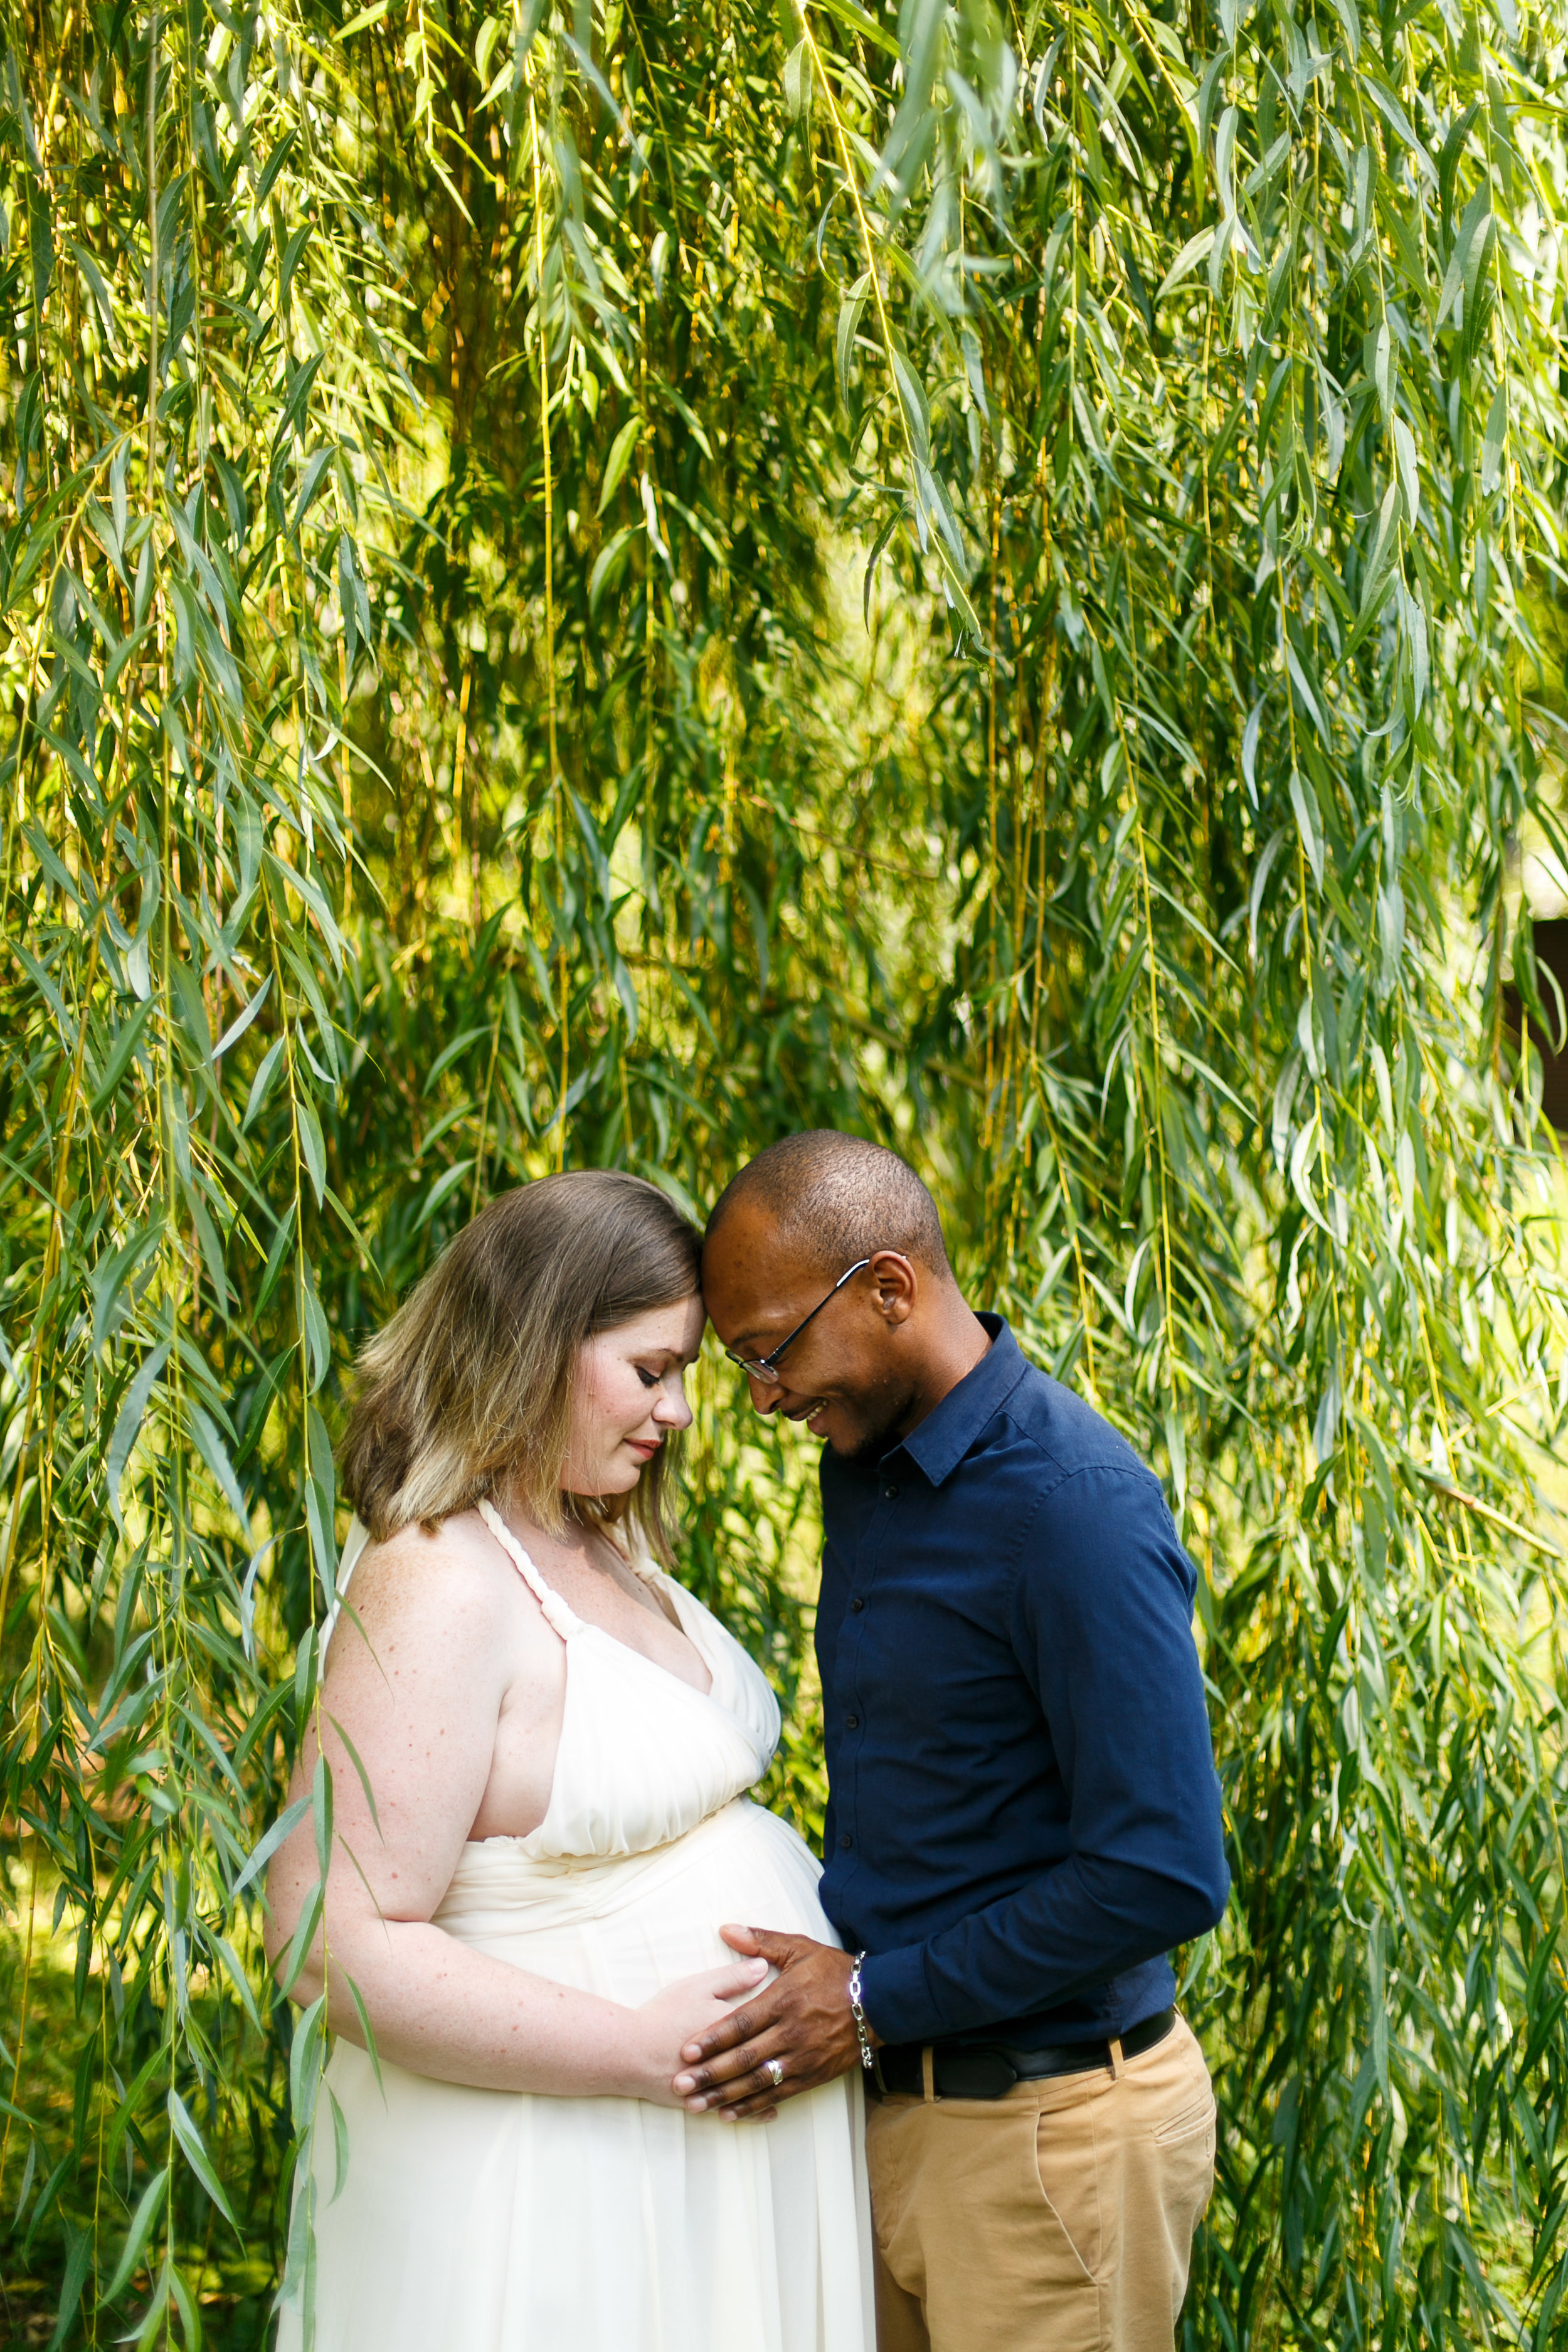 Amanda Old City Philadelphia Maternity Session-69.jpg